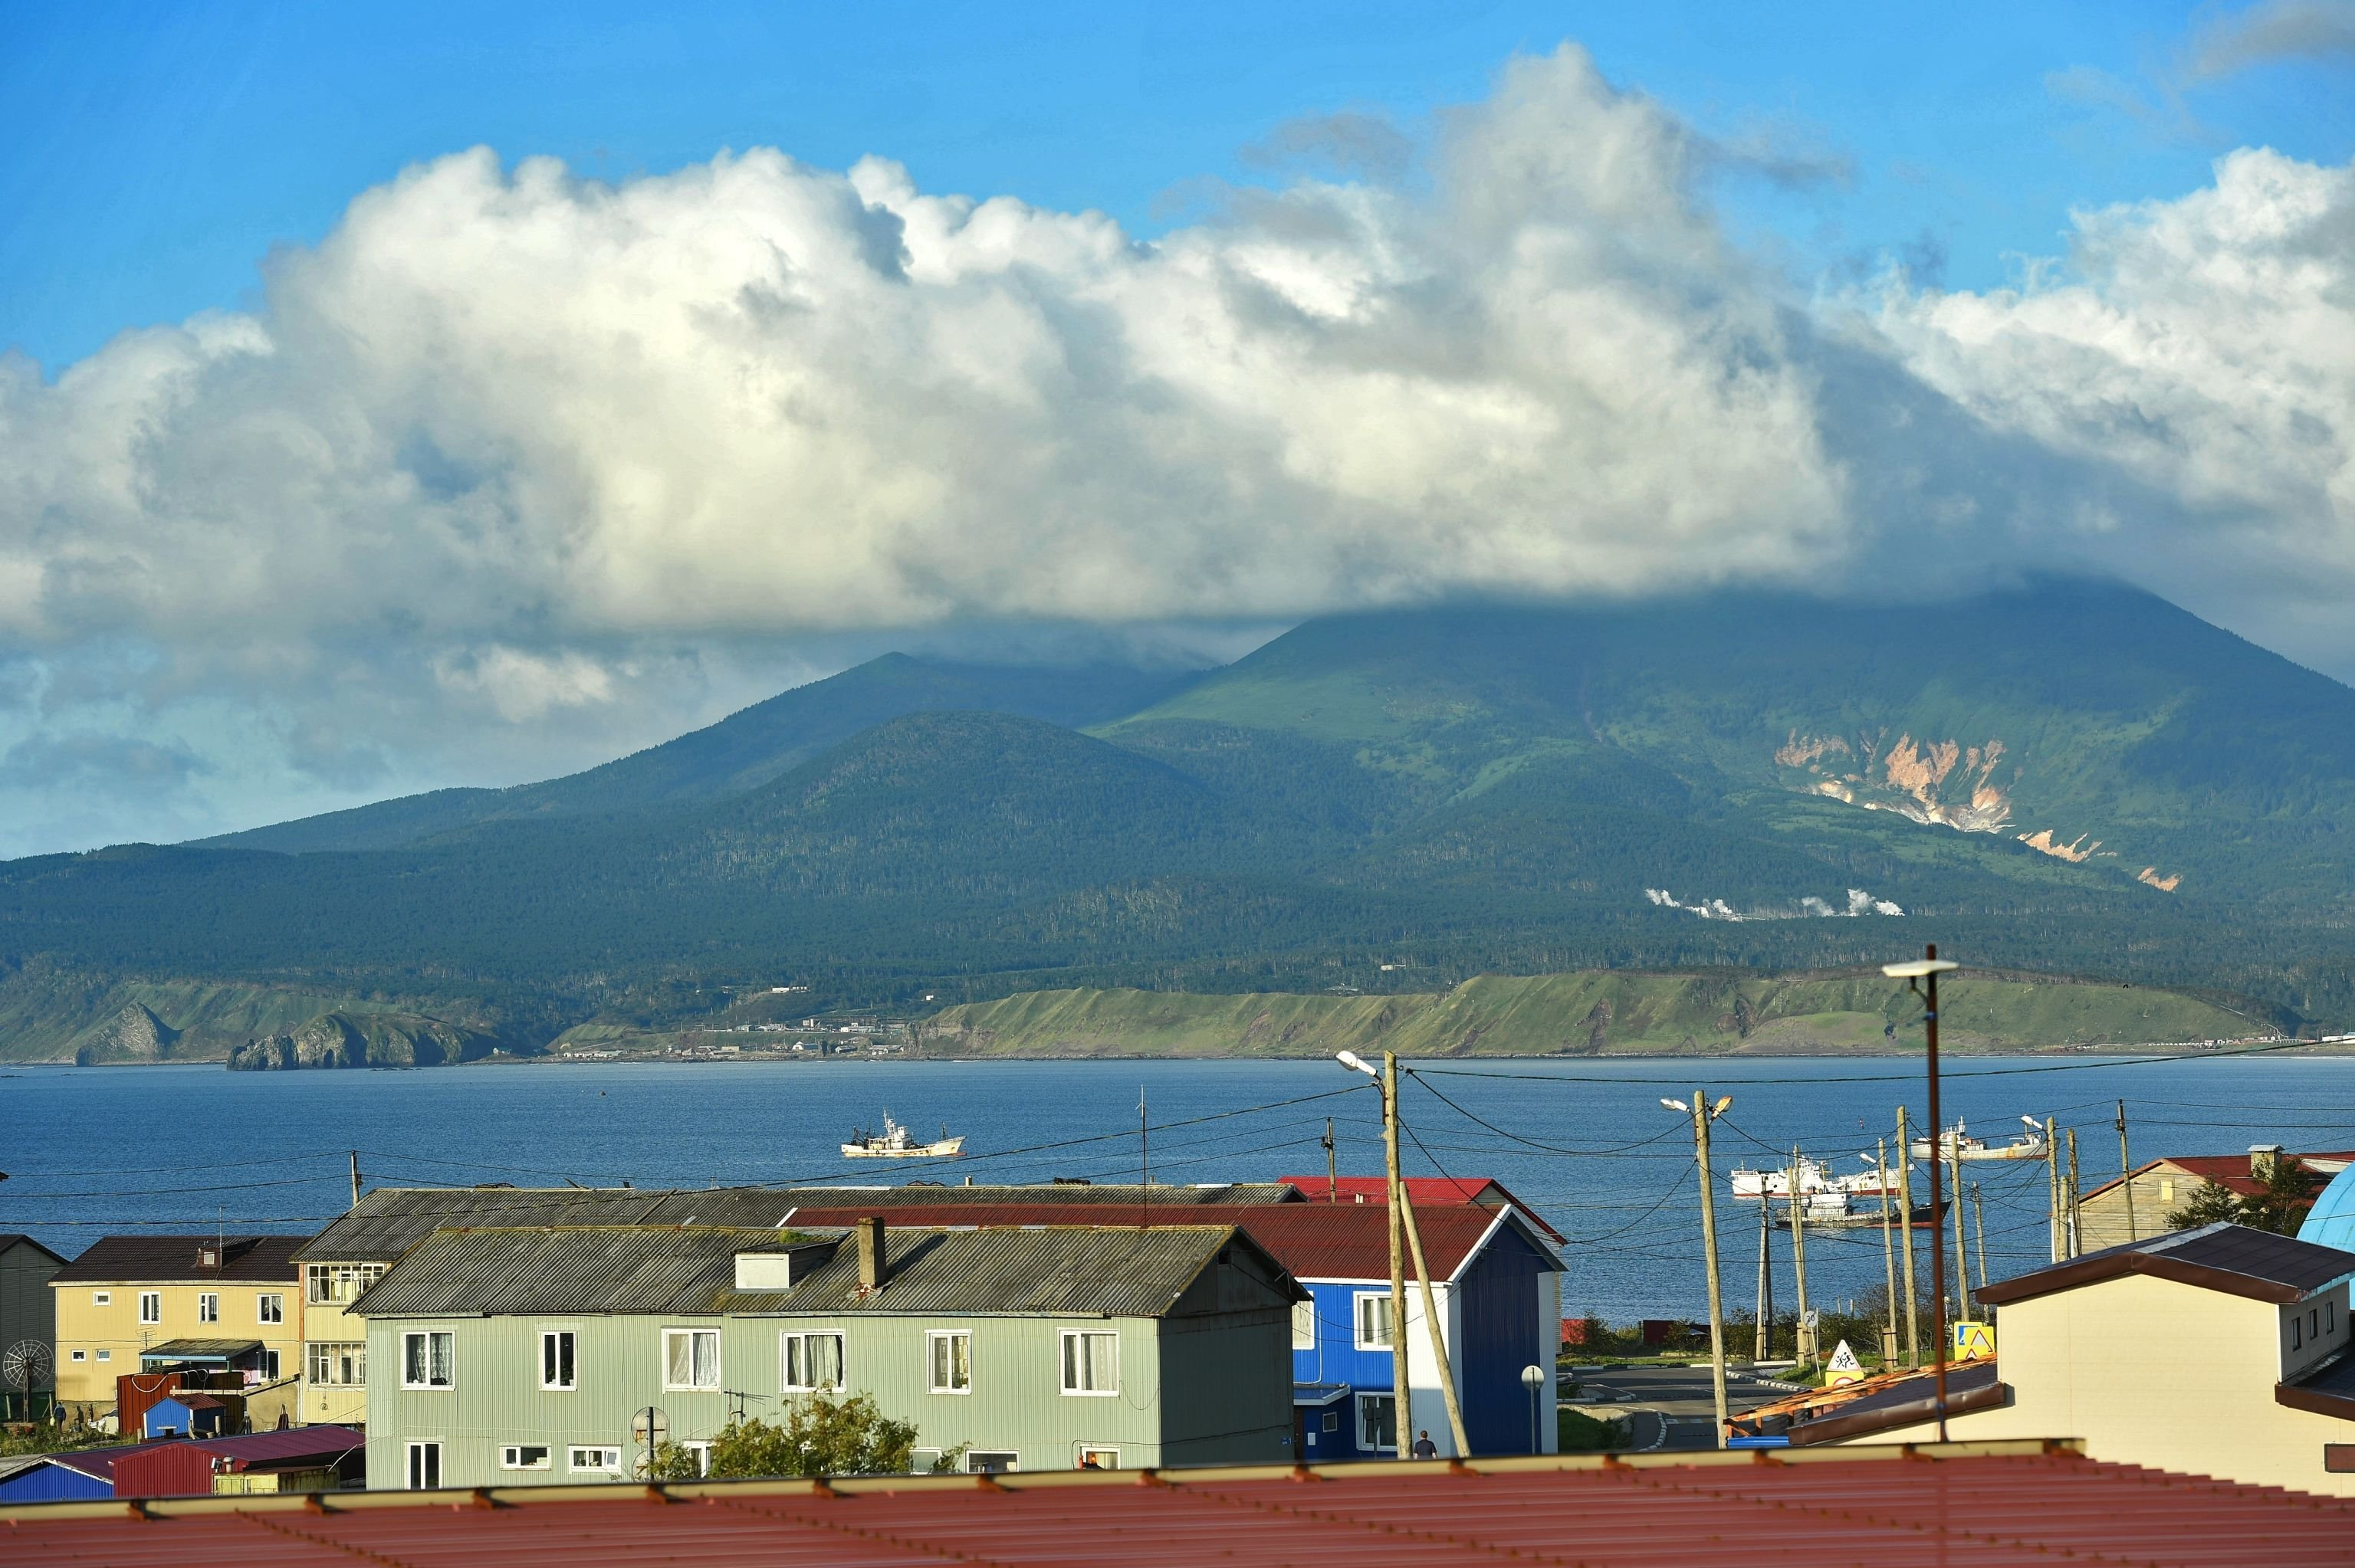 Yuzhno-Kurilsk village on Kunashir Island